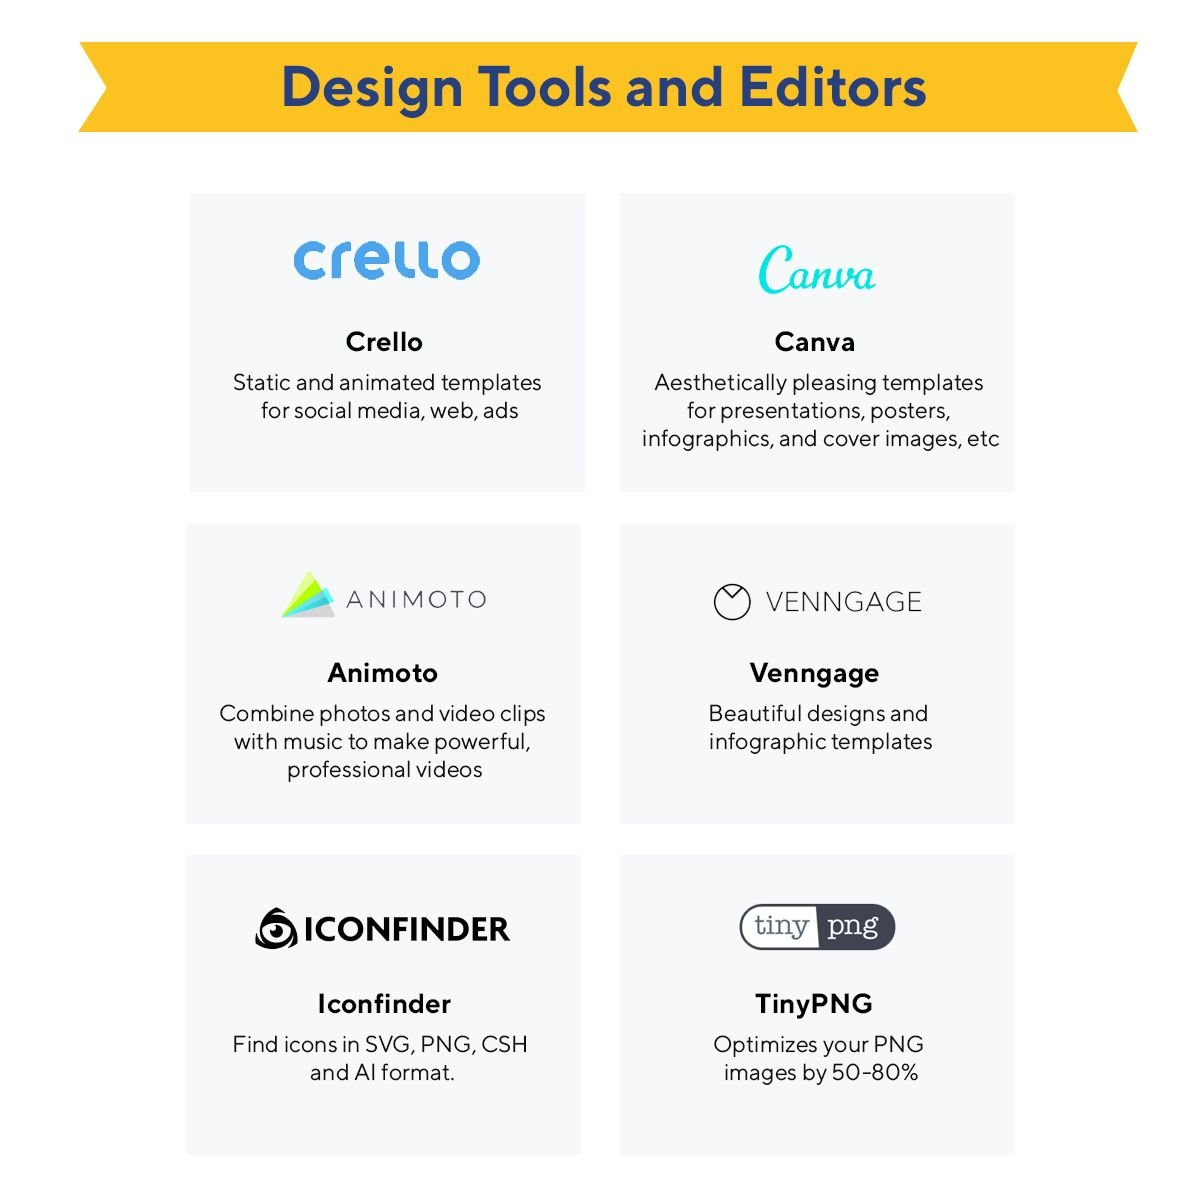 Design Tools and Editors